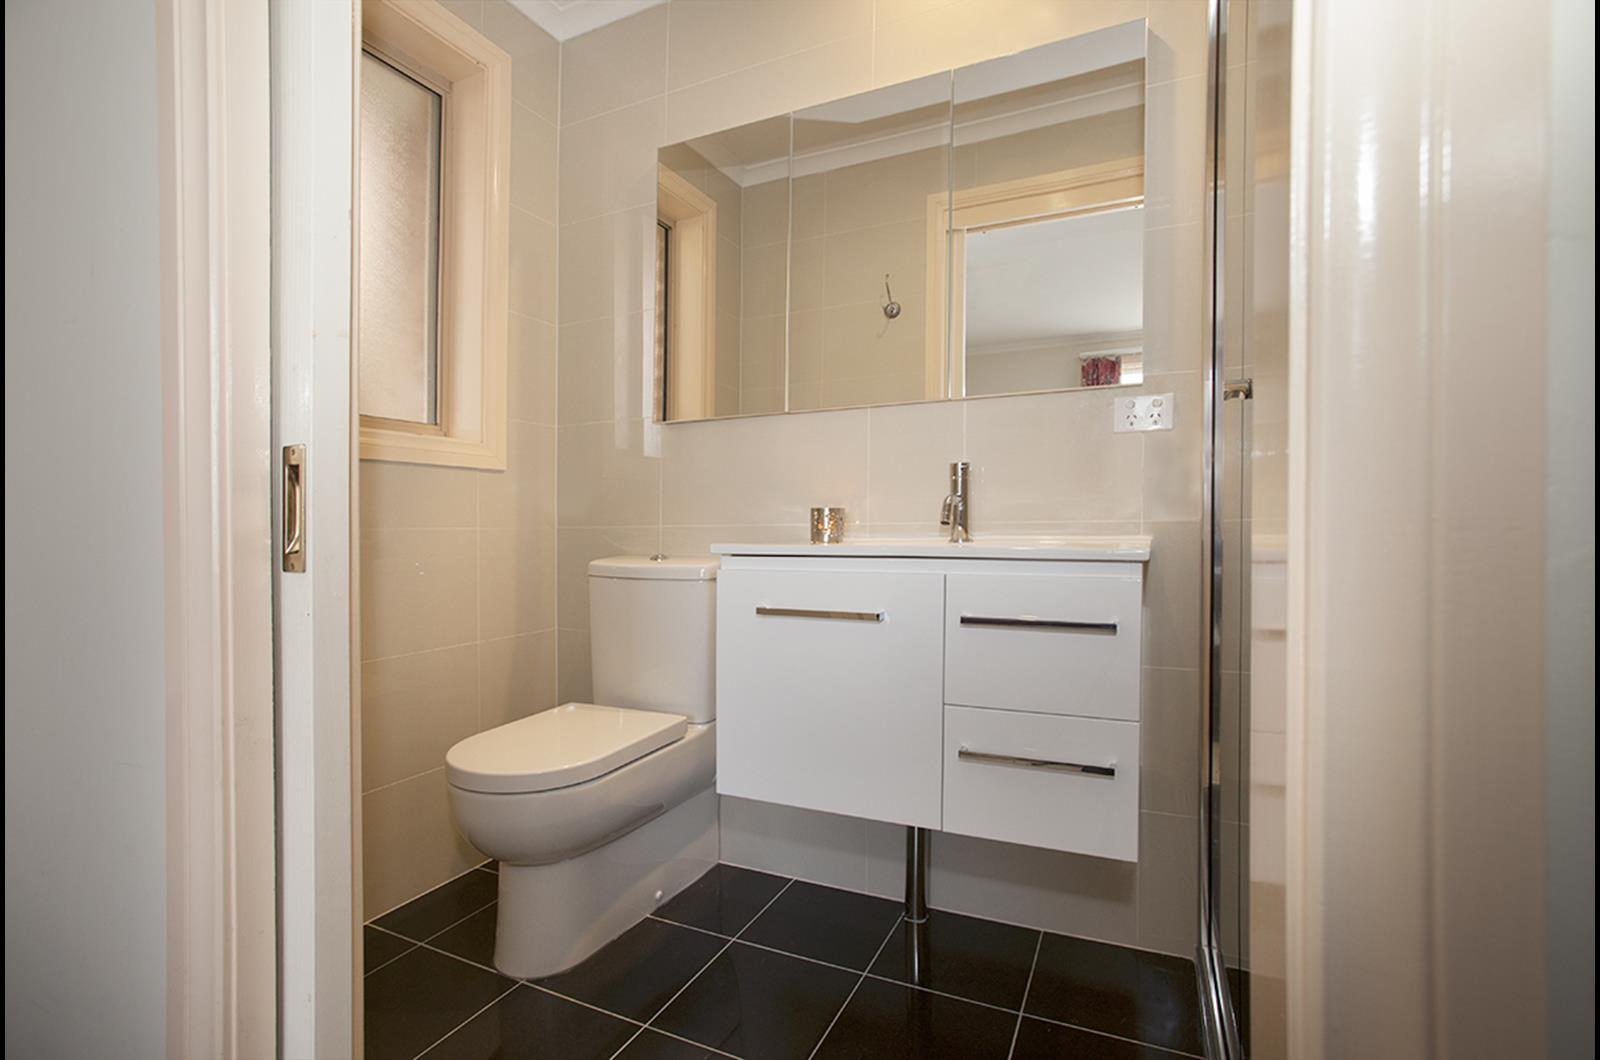 Glamorous 70 bathroom renovations canberra decorating for Ensuite bathroom renovation ideas